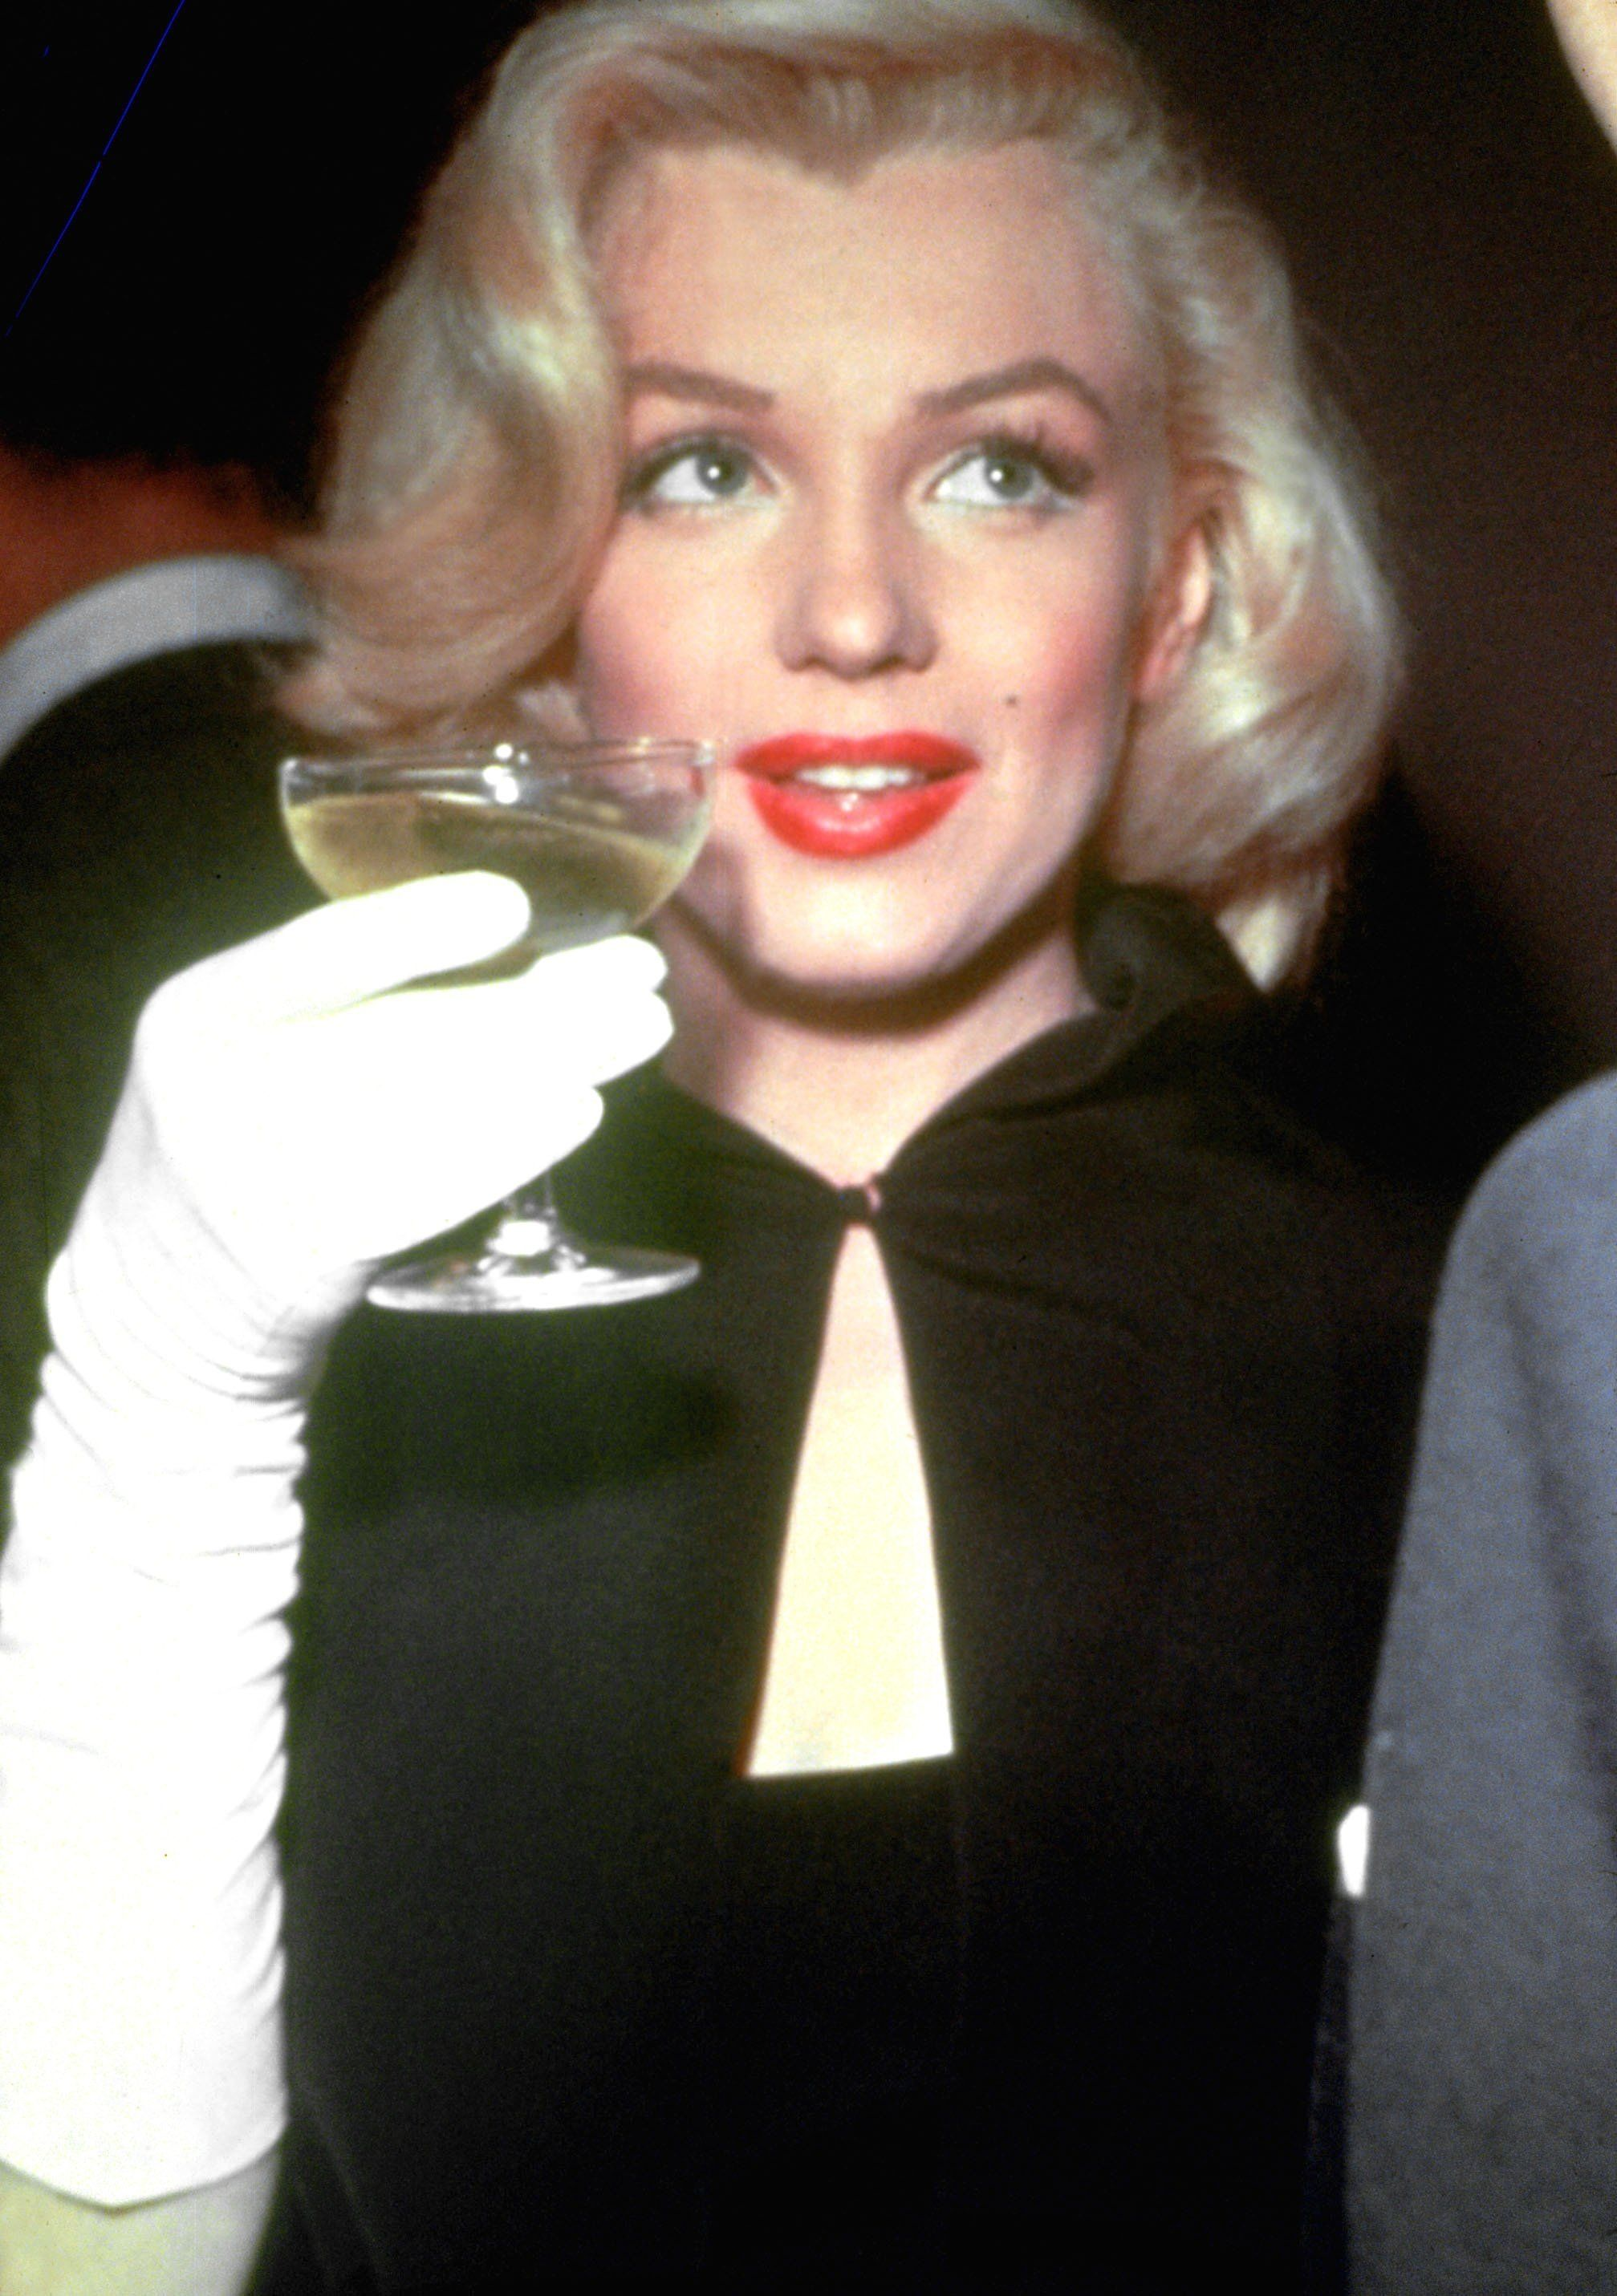 Marilyn Monroe may yearned for love and stability, yet often lashed out at those she cared about, according to science j